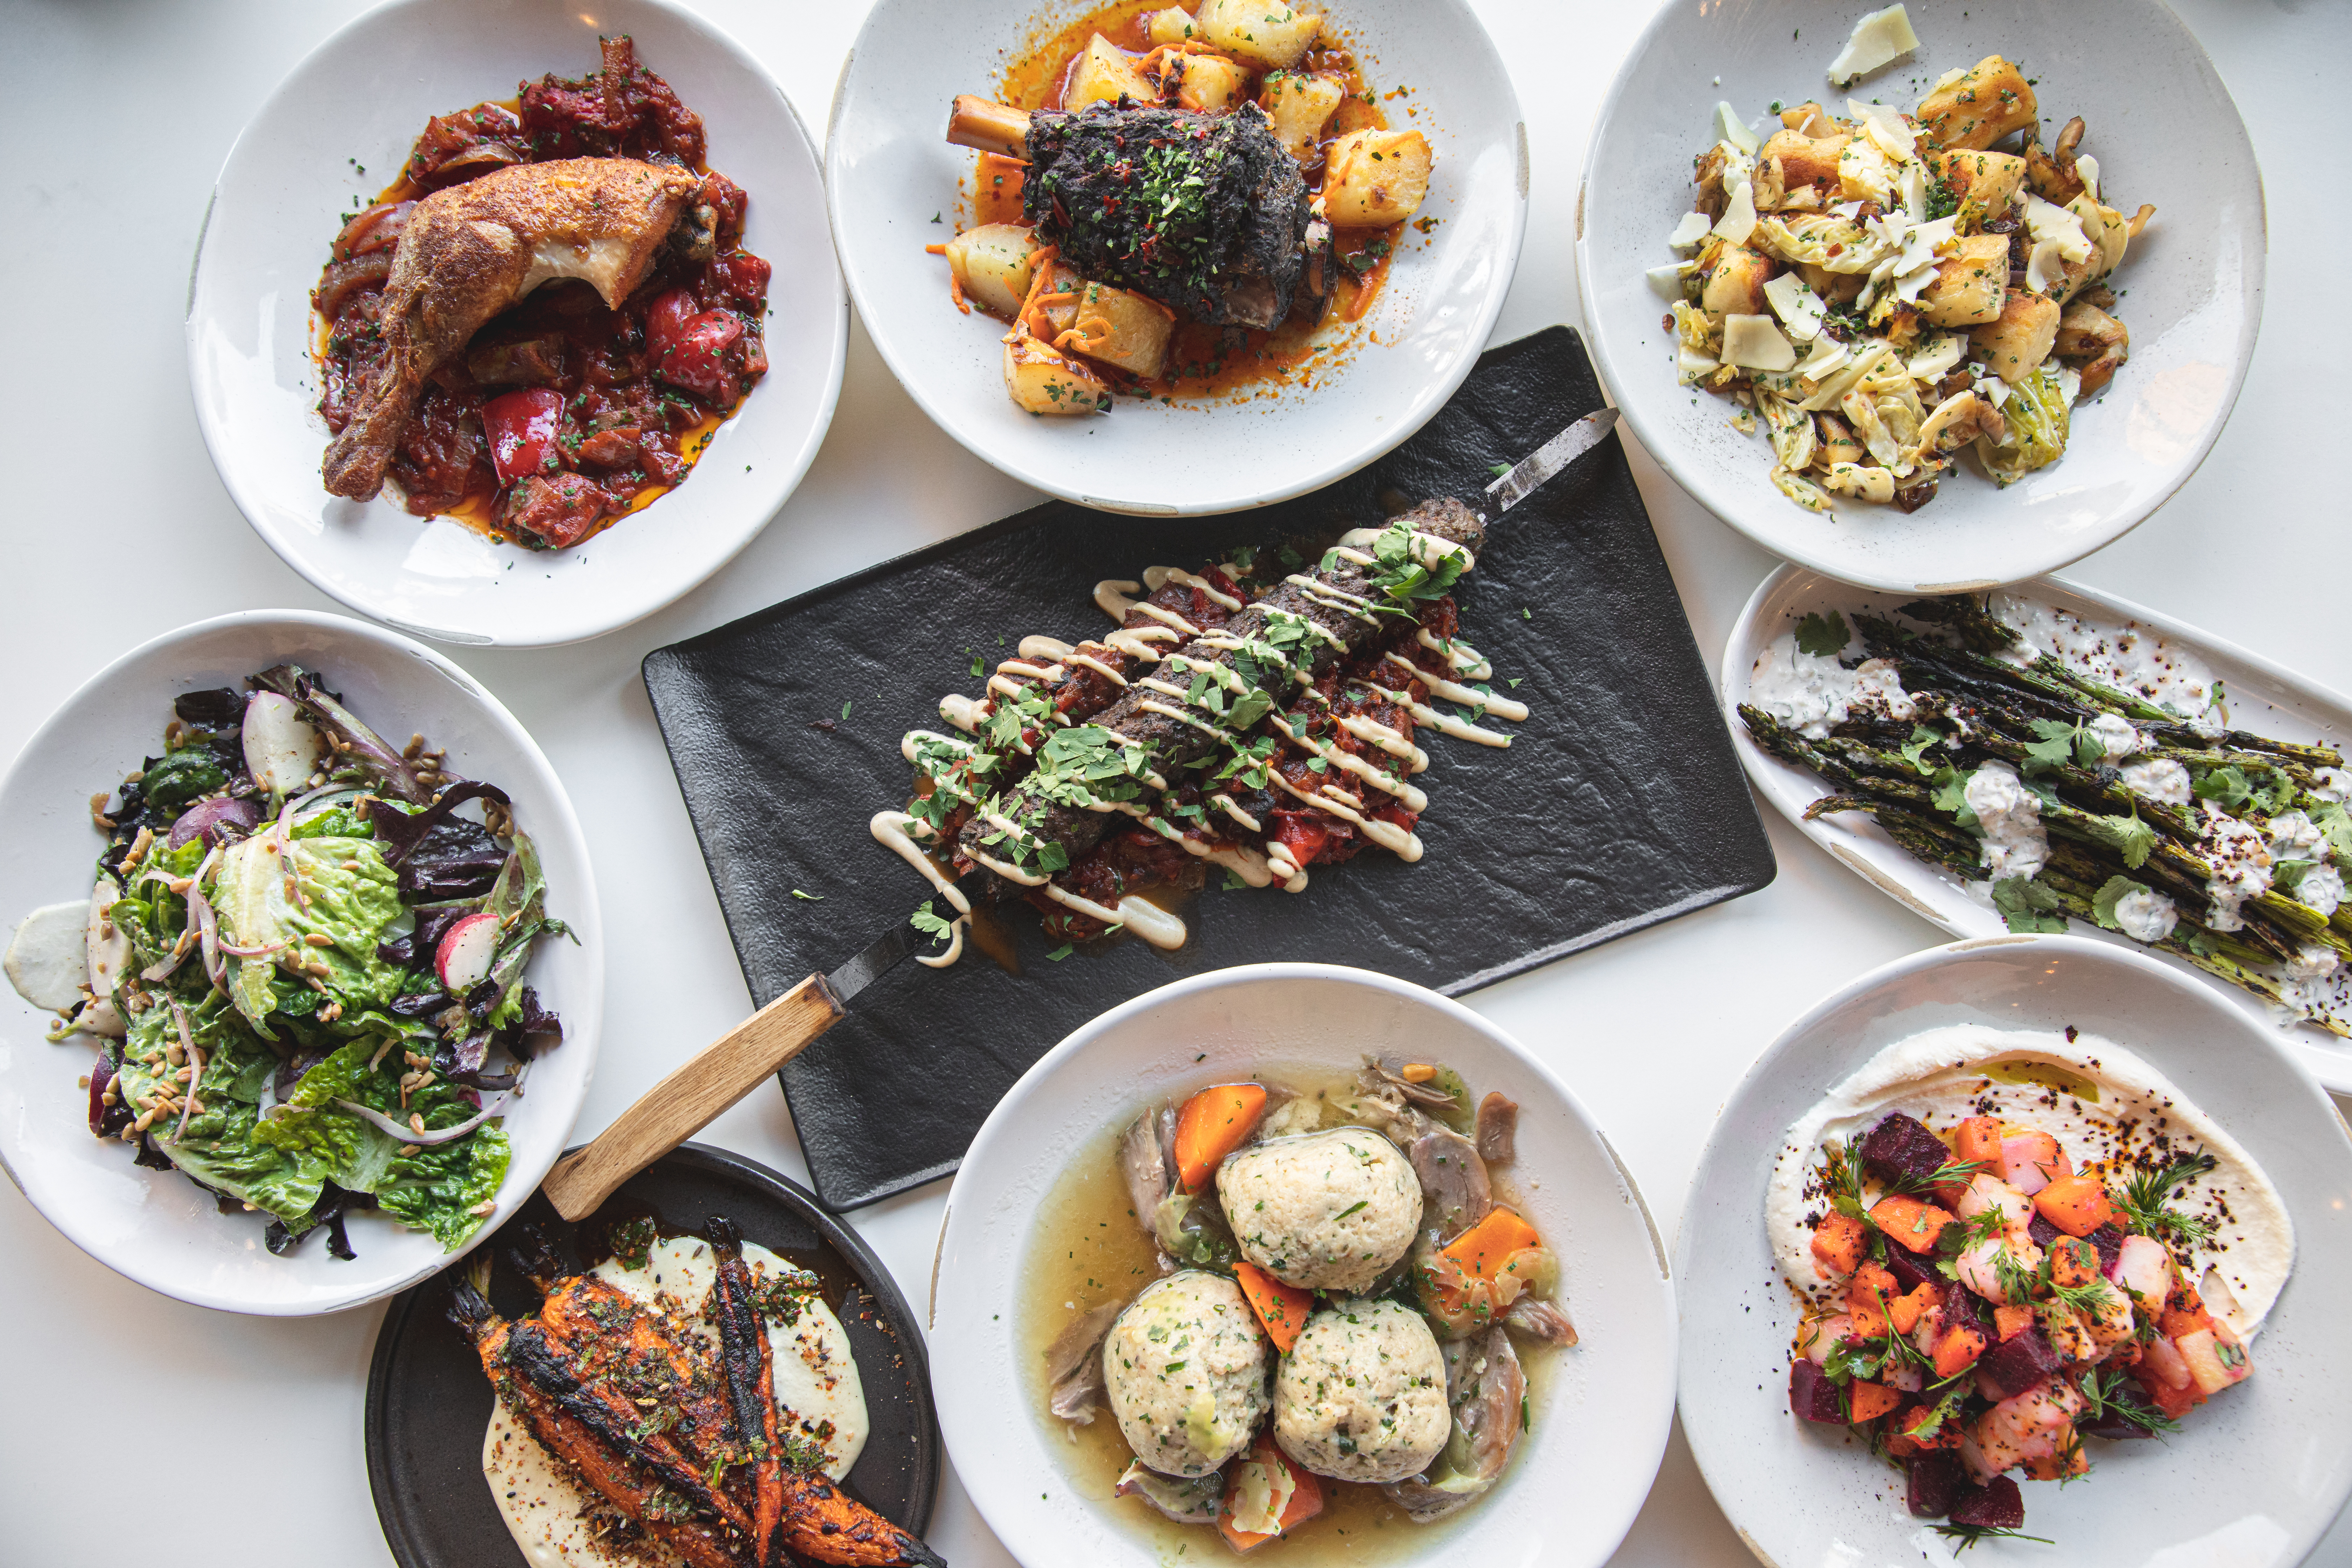 A white table is covered in plates from Y'alla, including a Bulgarian kebab at its center, a plate of matzo balls, roasted spring carrots with salsa verde, chicken confit with tomatoes, and more